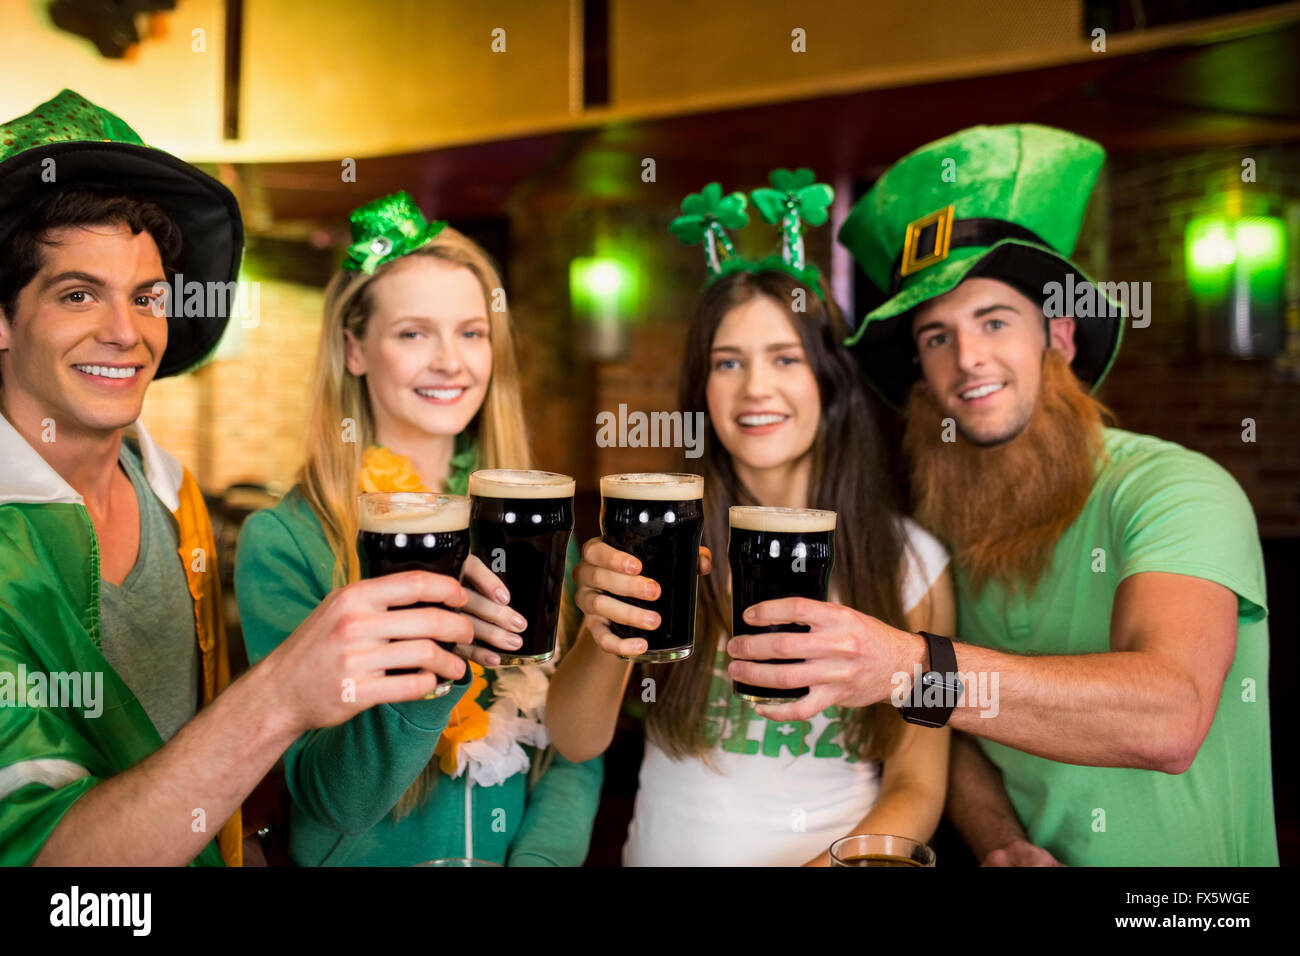 Smiling friends with Irish accessory - Stock Image